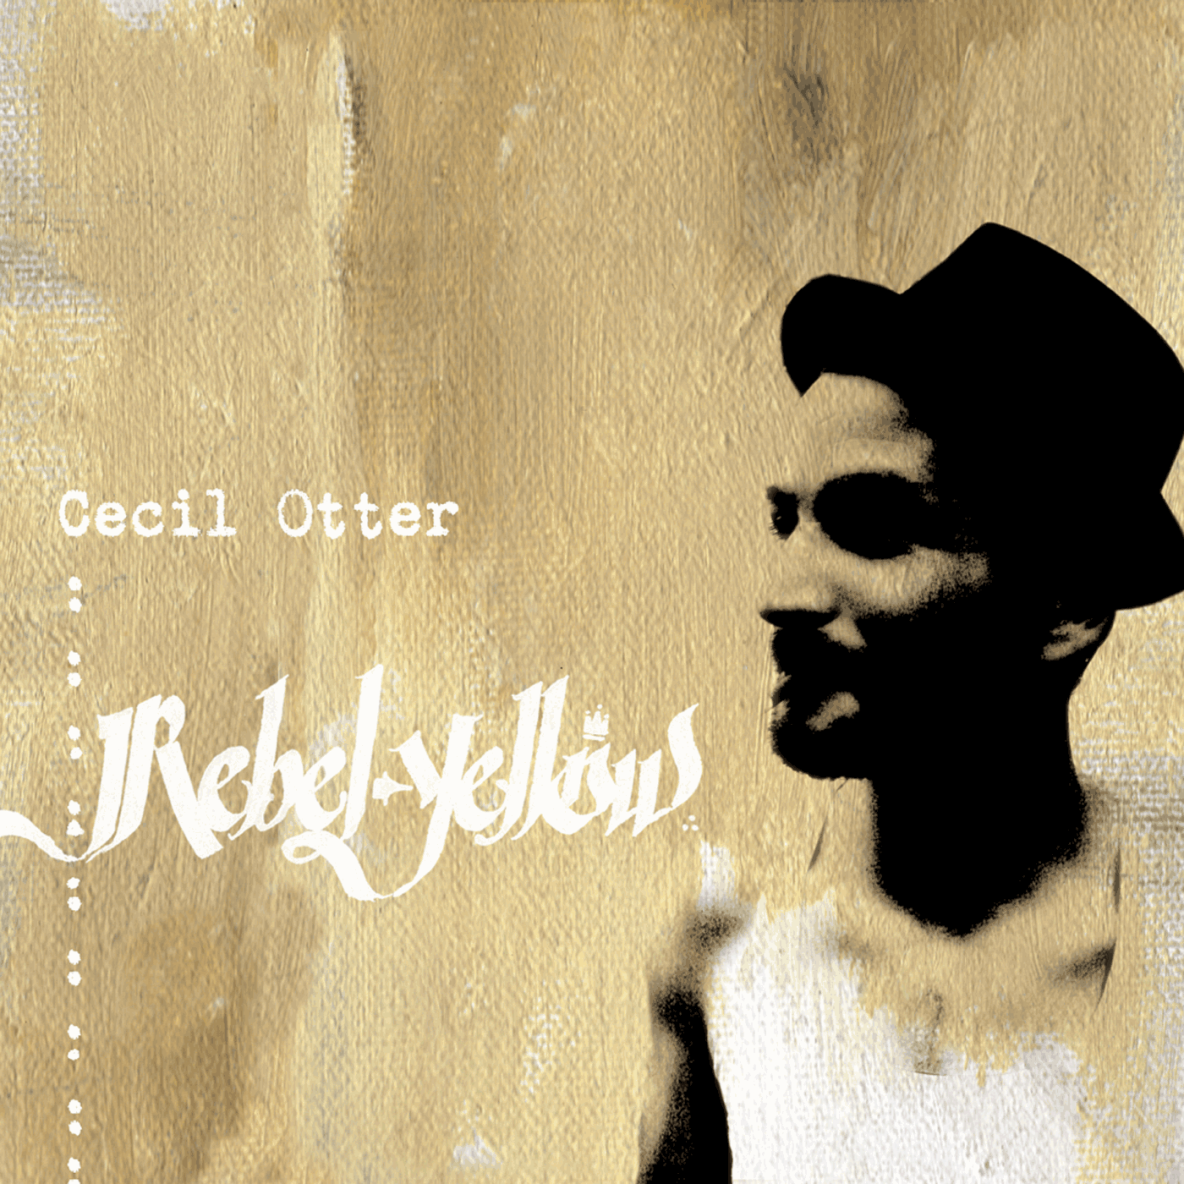 Cecil-Otter-Rebel-Yellow